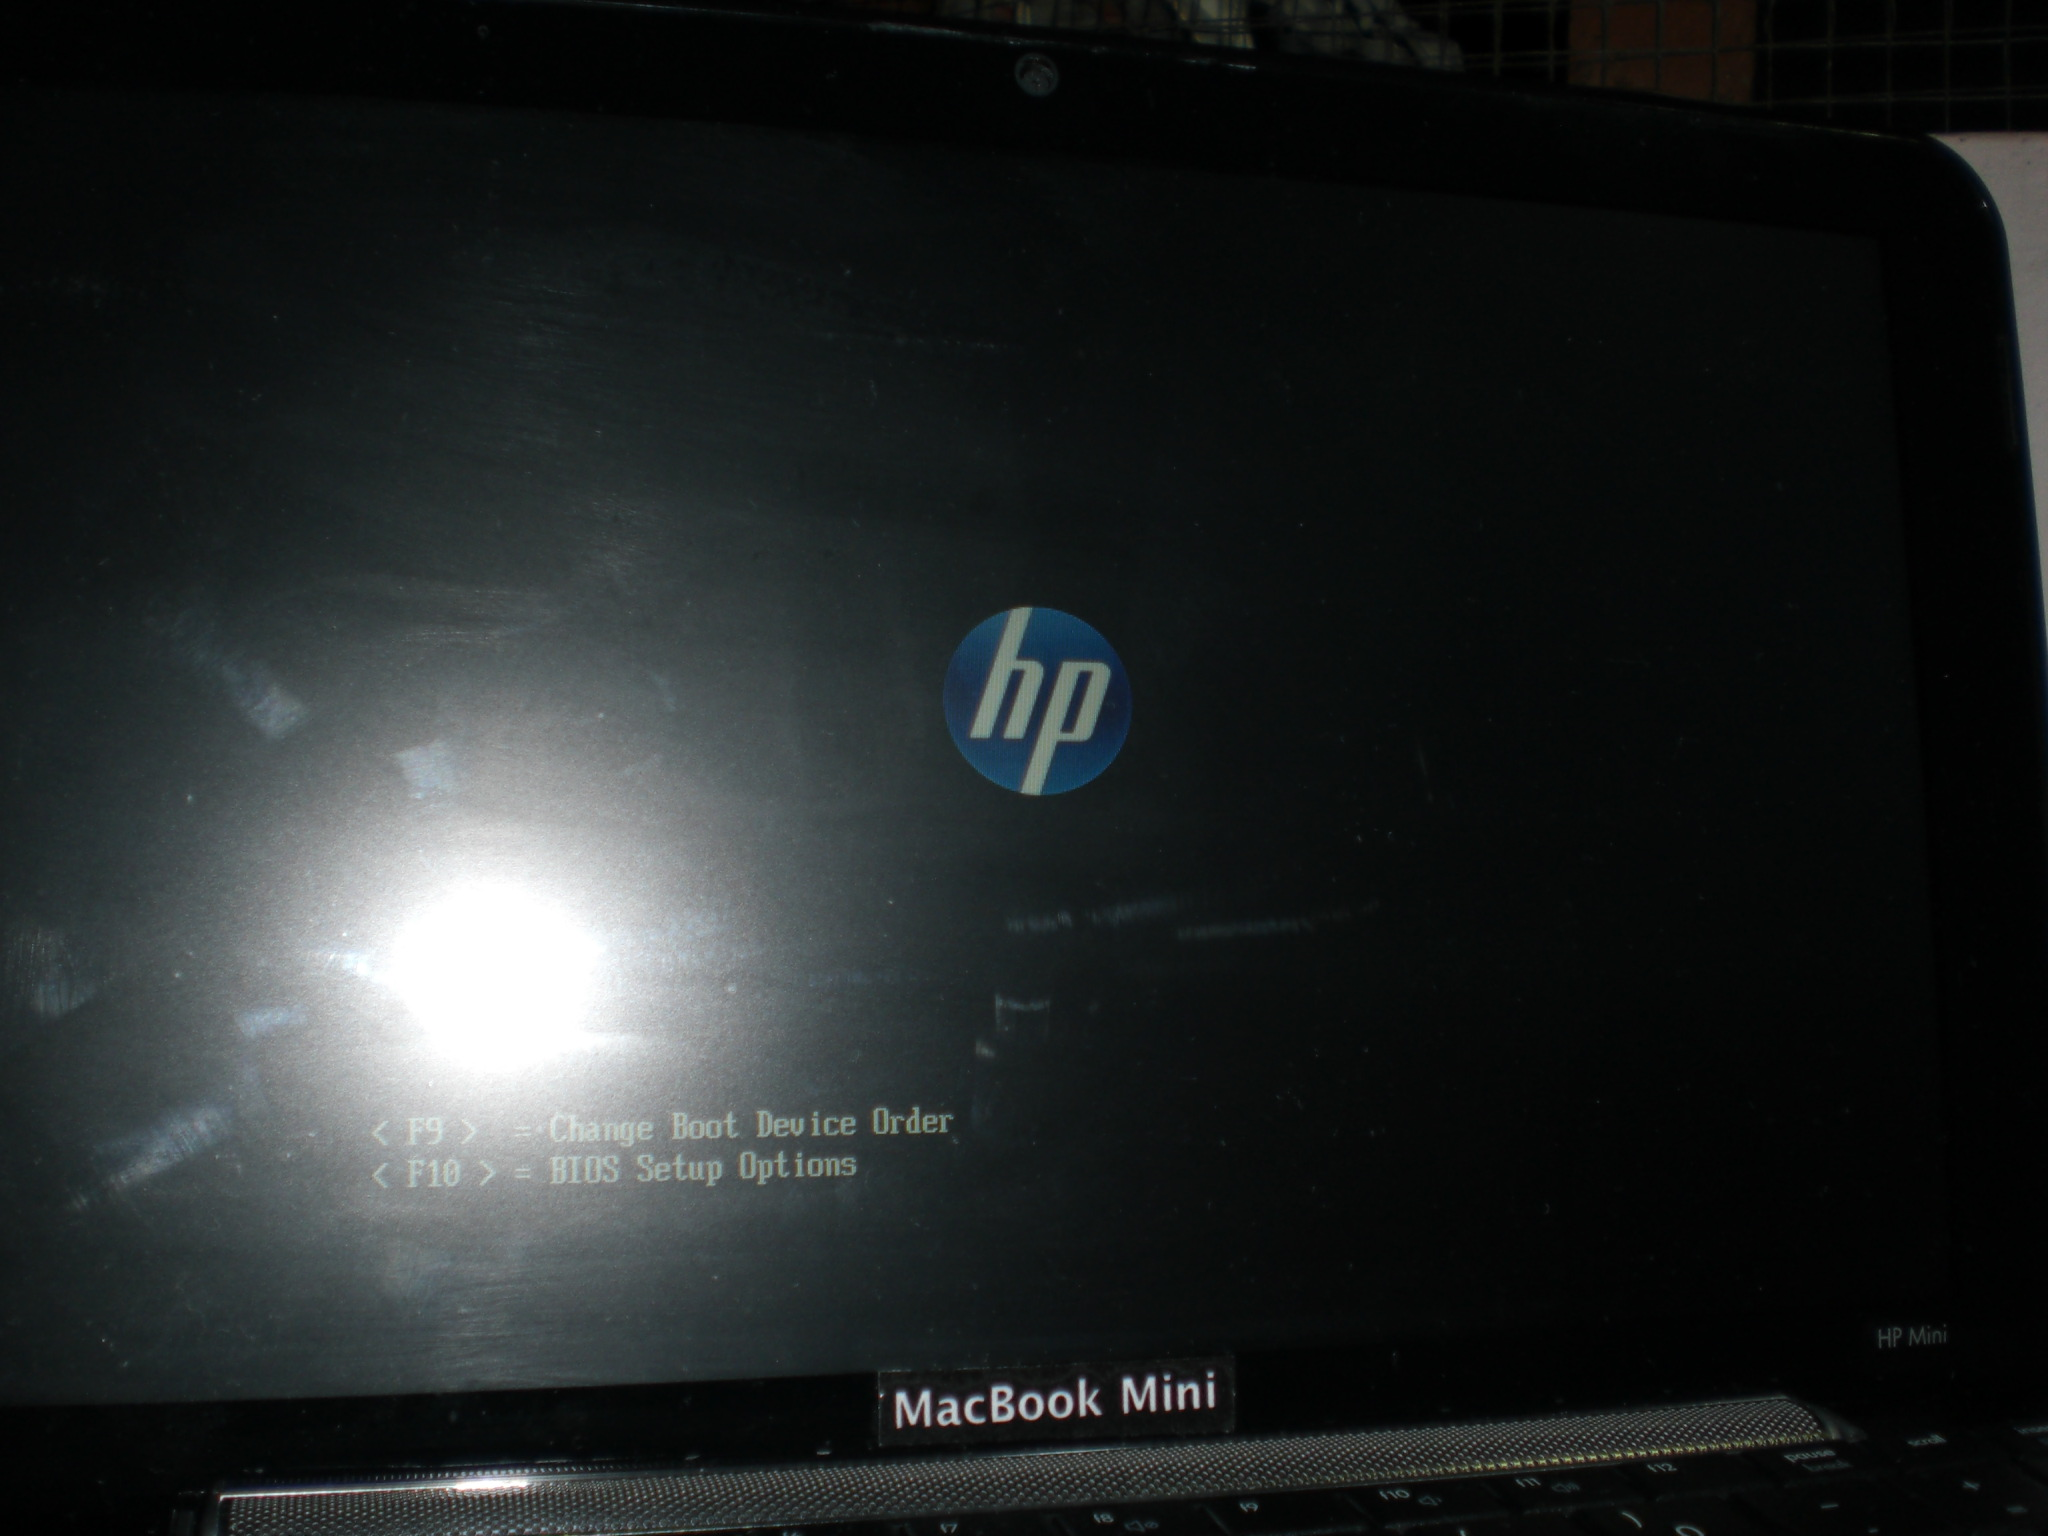 hp logo is back!